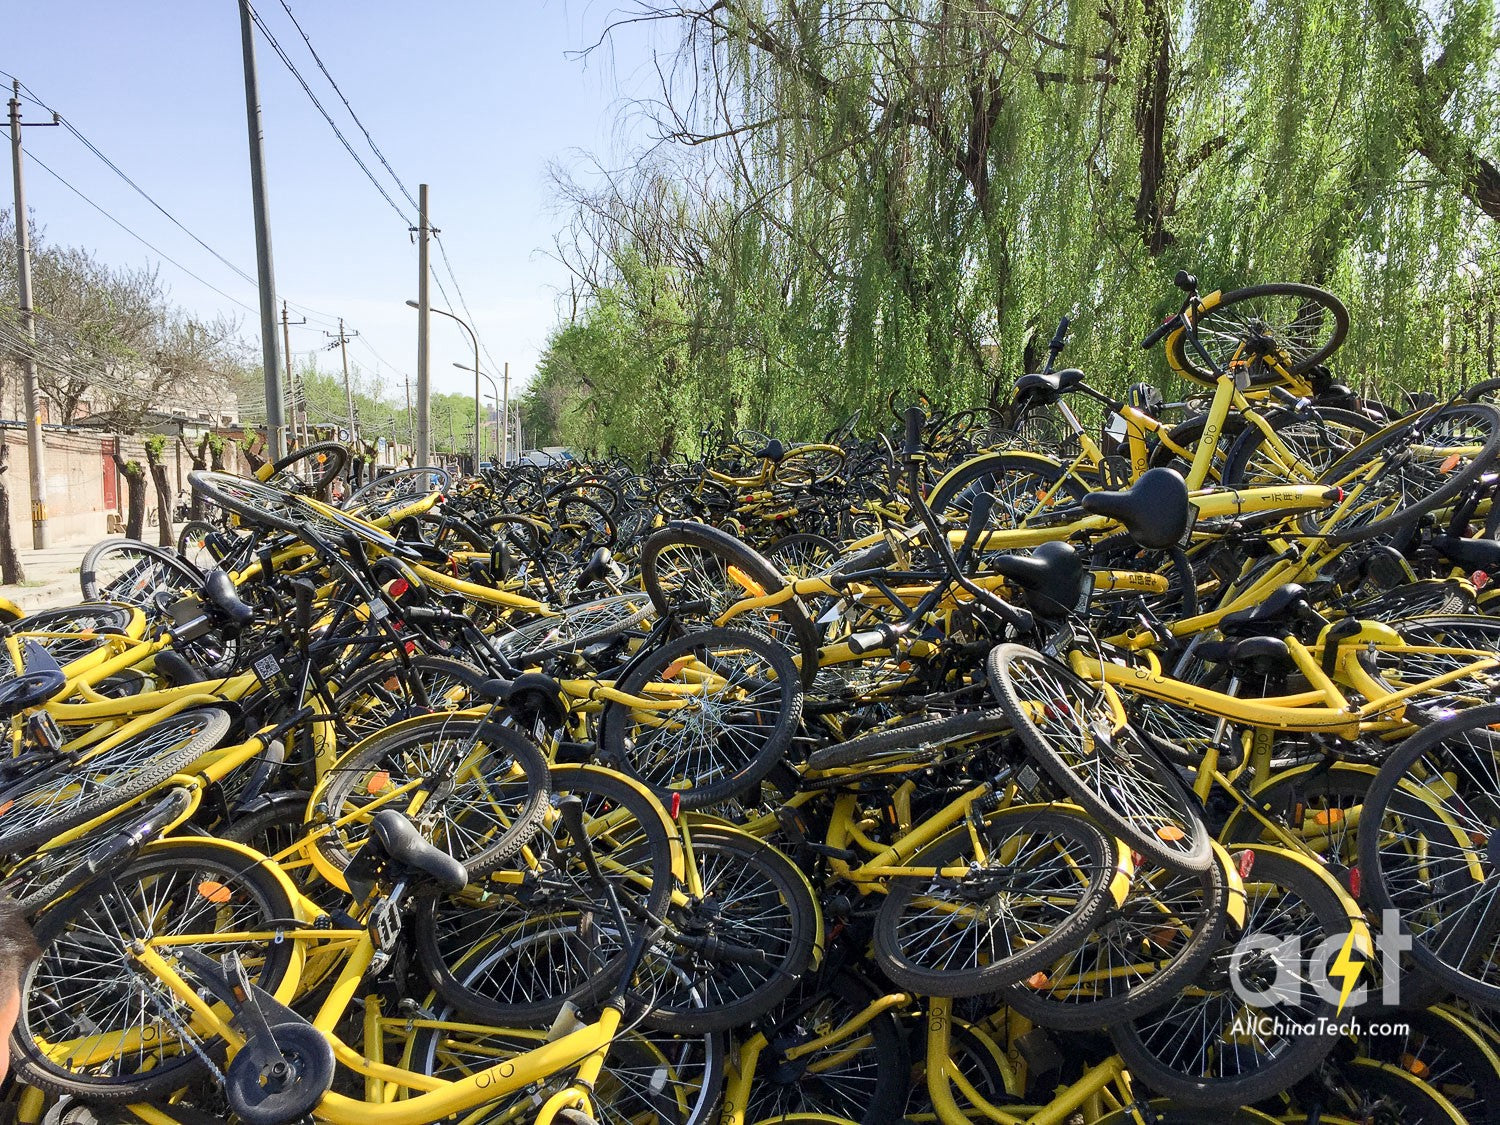 bicycles from sharing company vandalised